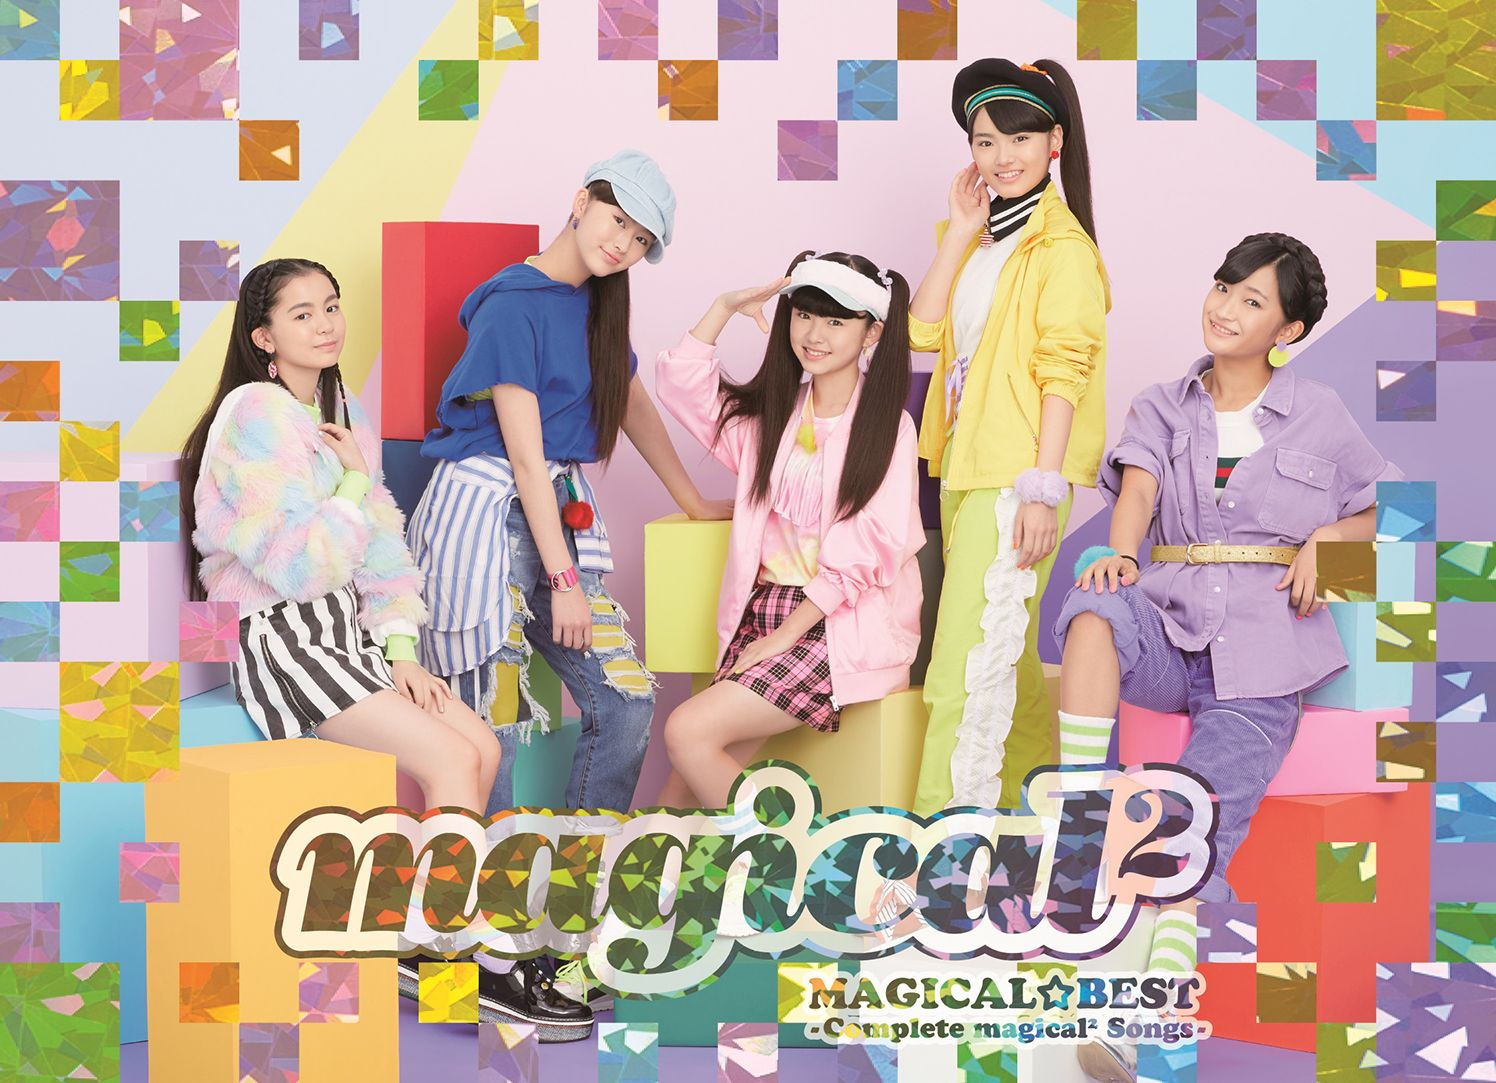 MAGICAL☆BEST -Complete magical2 Songs- (初回限定盤 CD+DVD) (ダンス盤) [ magical2 ]